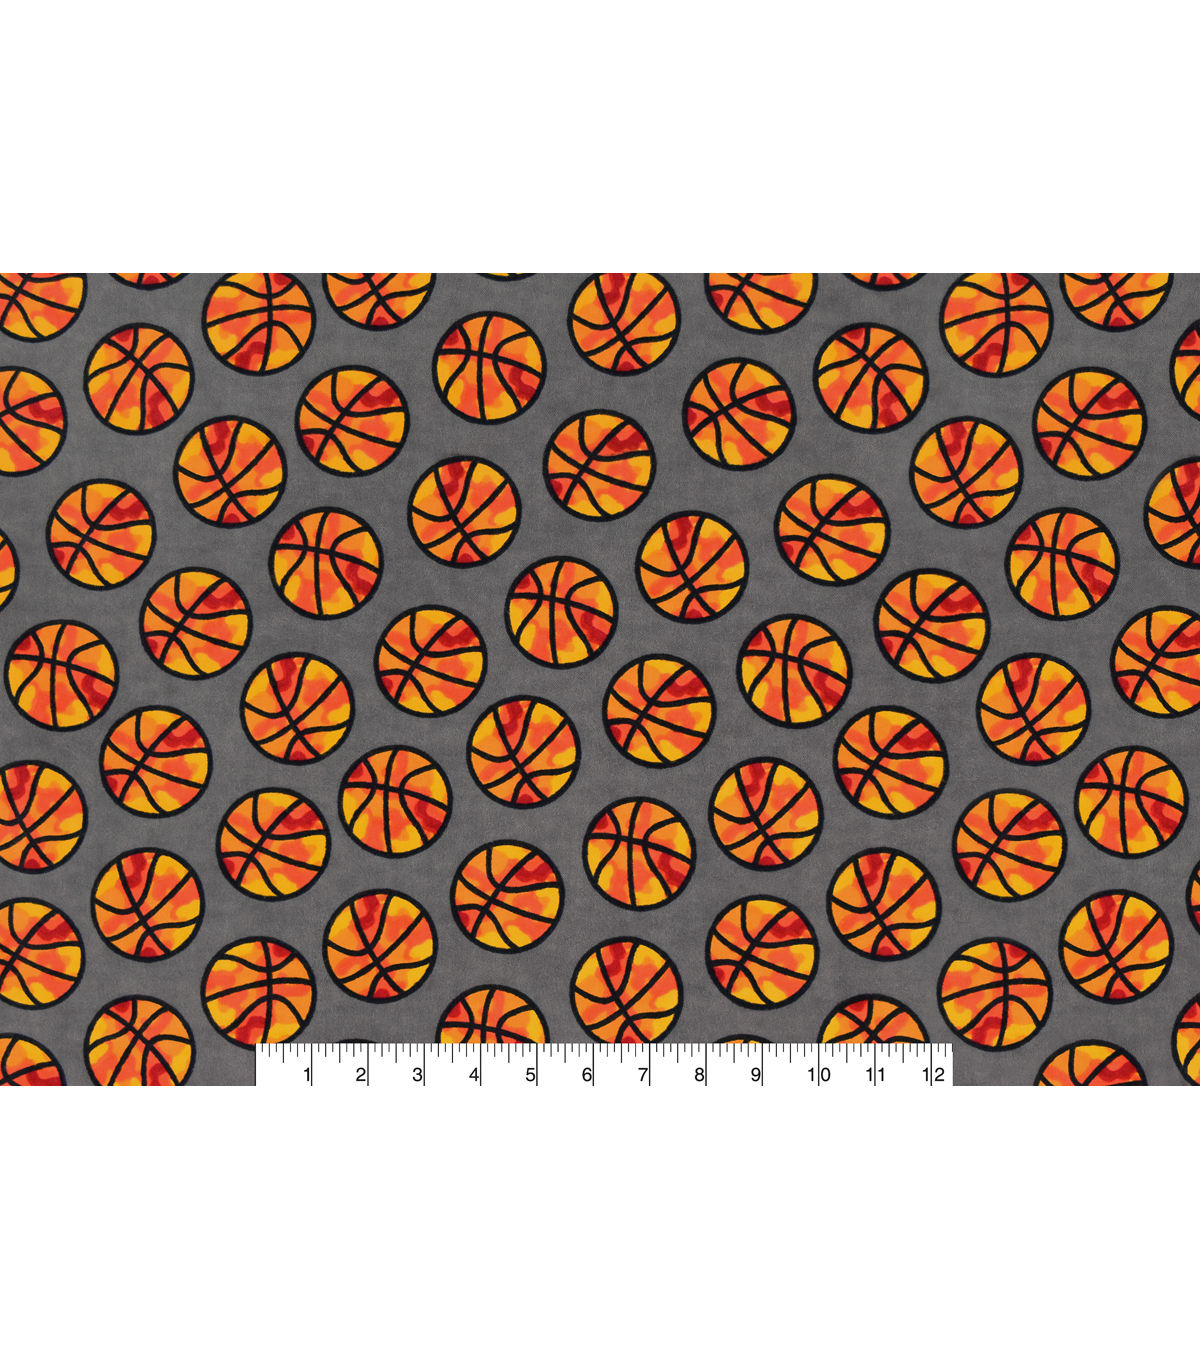 Snuggle Flannel Fabric 42\u0027\u0027-Camo Basketball